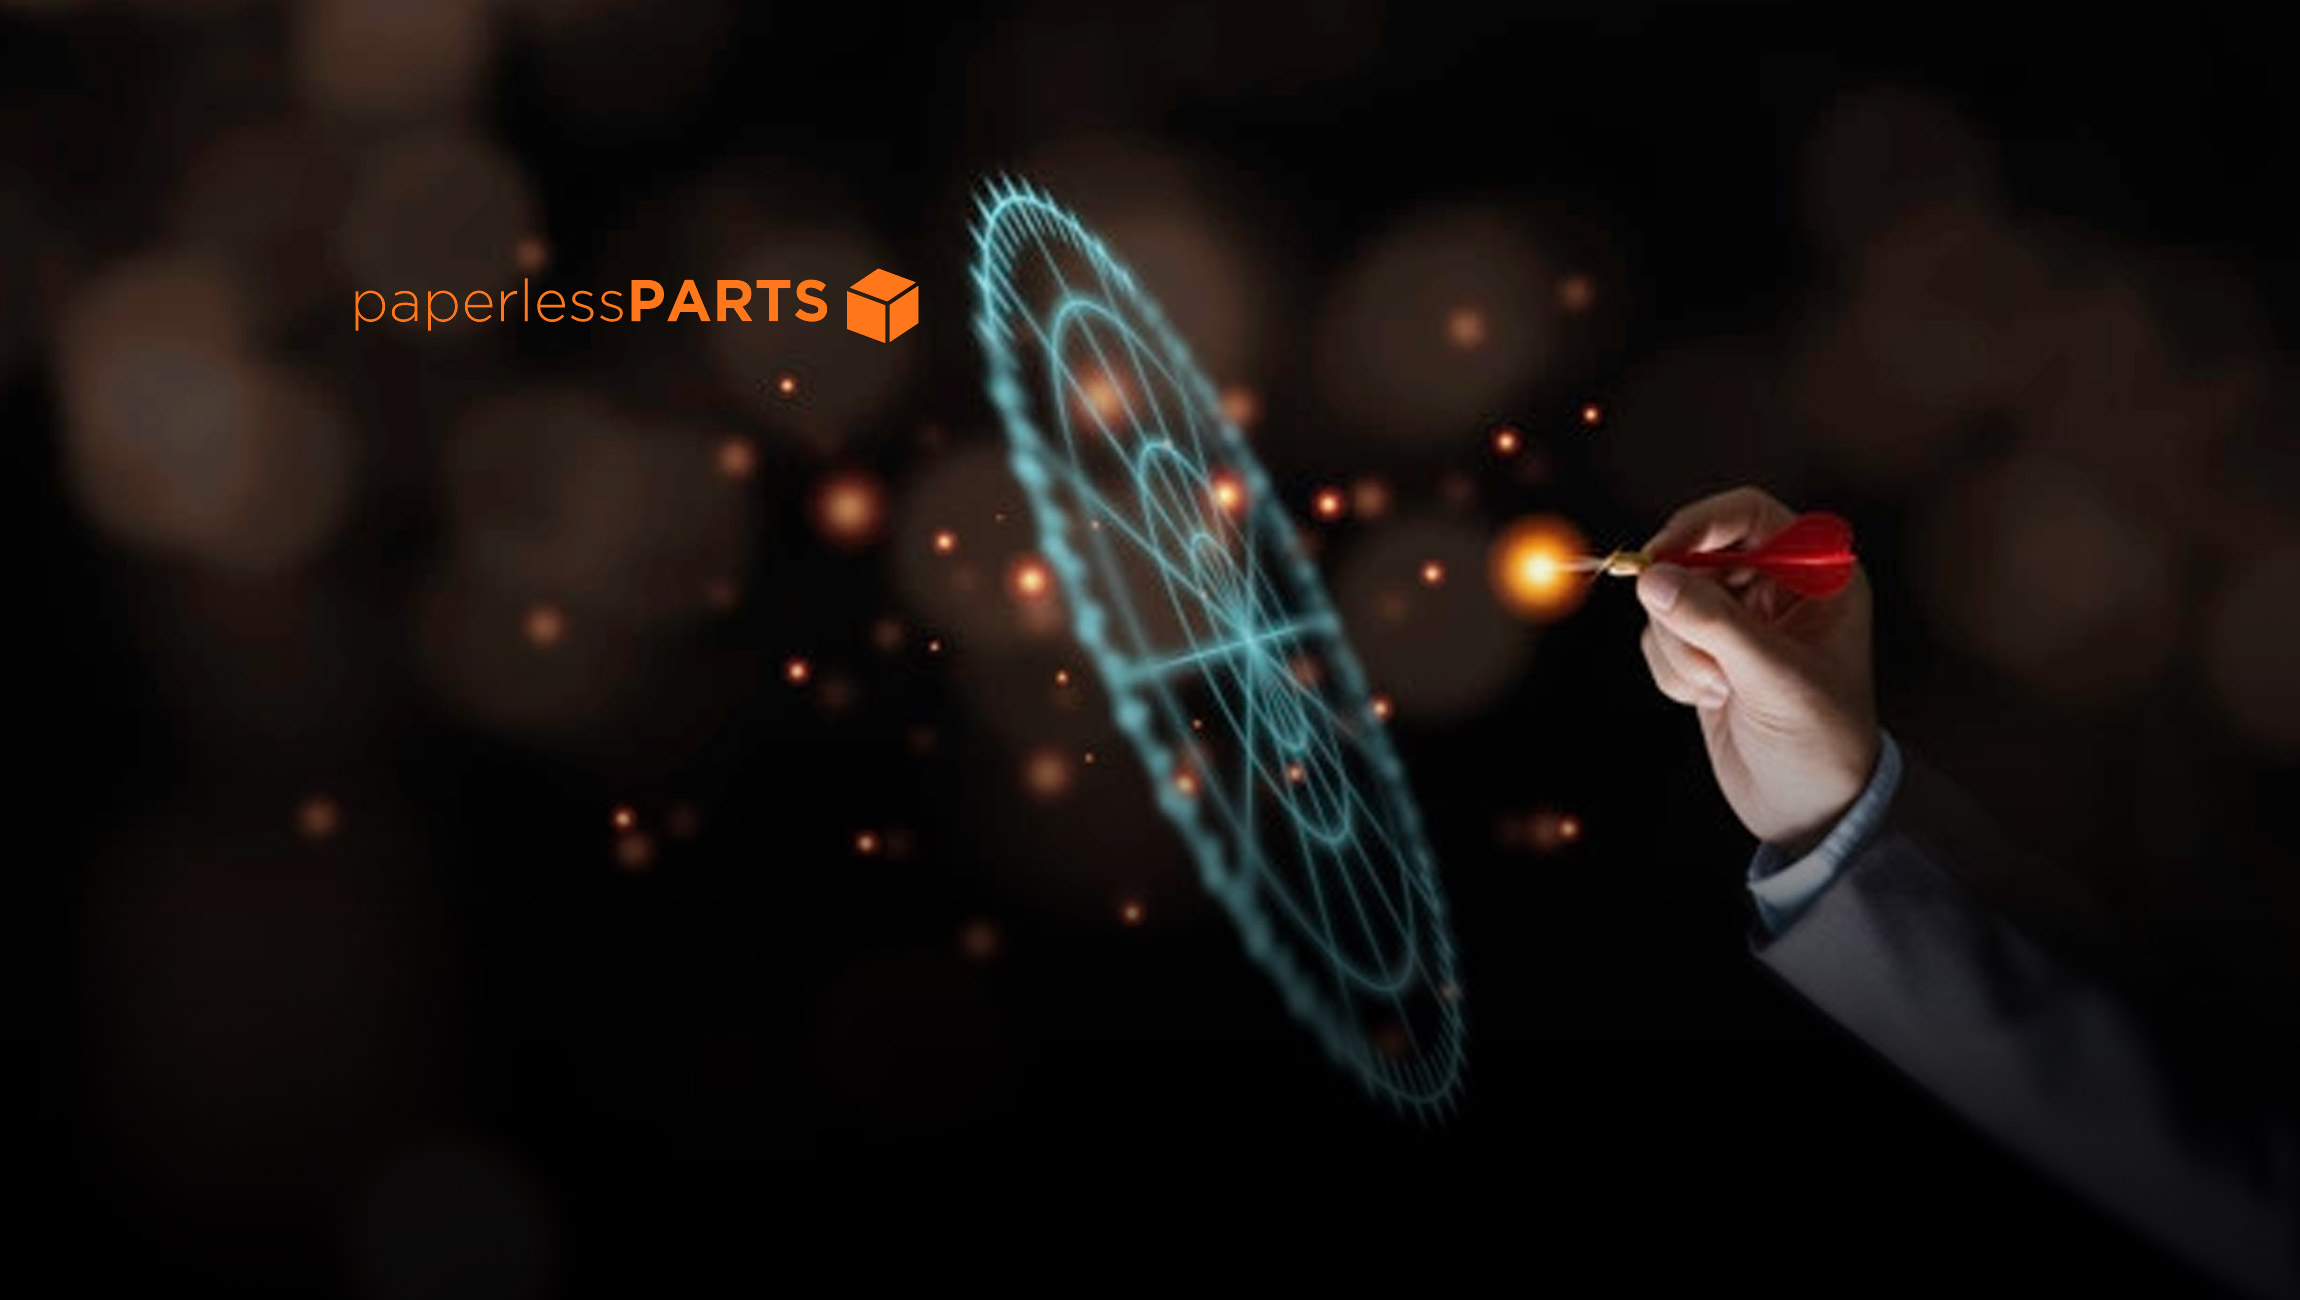 Paperless-Parts-Launches-Search-Function-to-Make-Quoting-Manufacturing-Jobs-Faster-and-More-Accurate